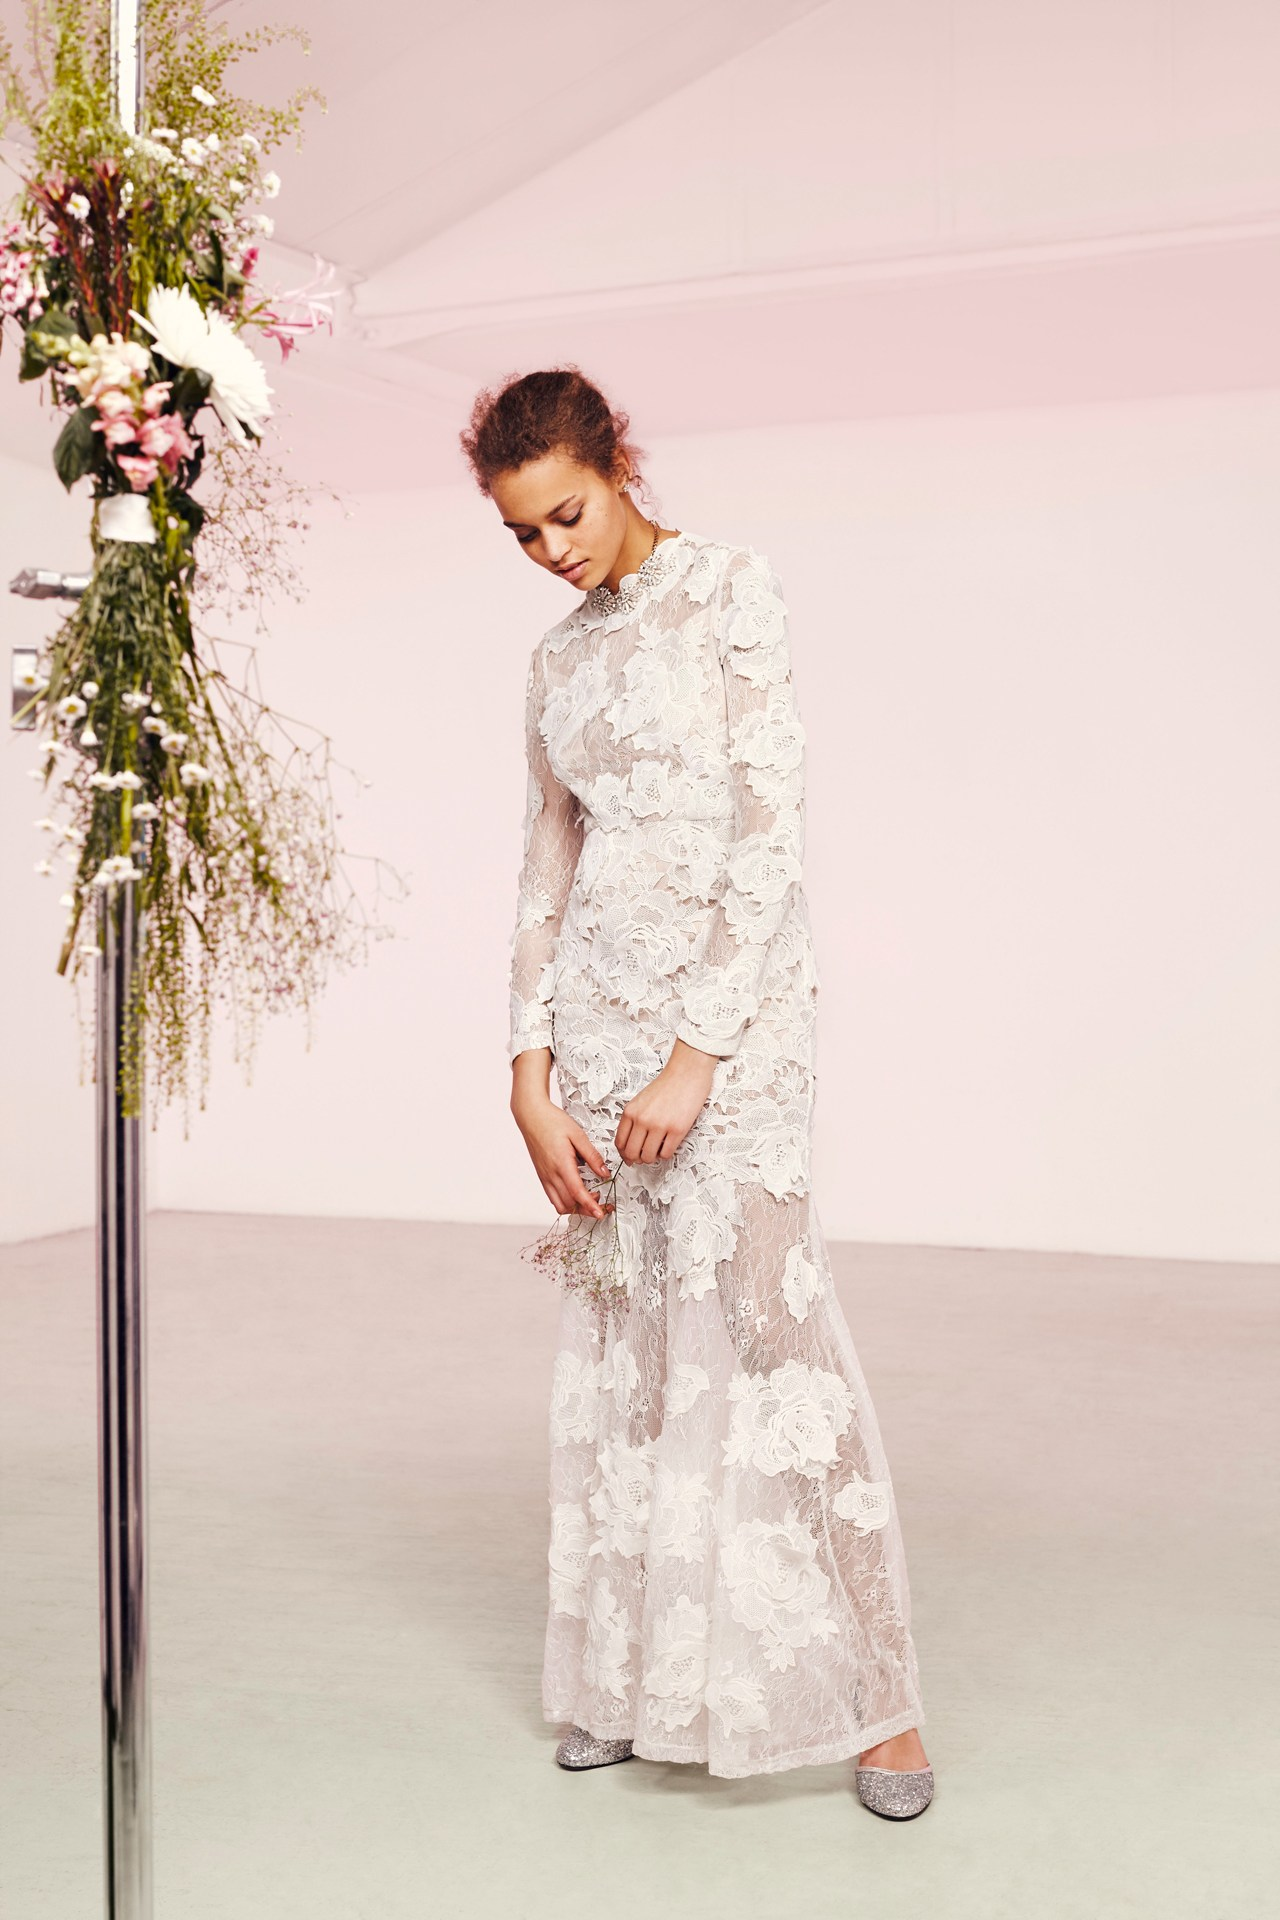 Best places to buy bridesmaid dresses online vosoi best places to buy wedding dresses best where to buy wedding ombrellifo Gallery